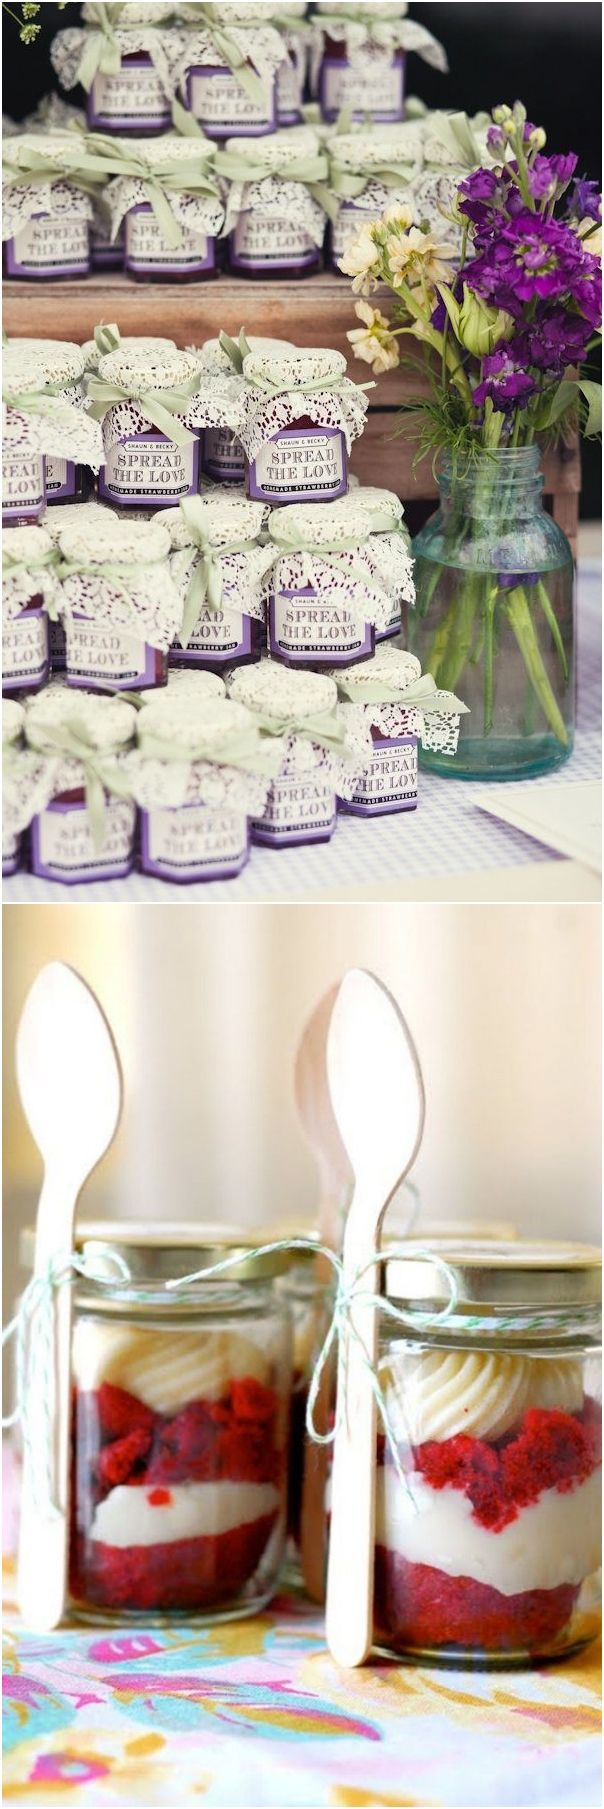 440 best Wedding Favors images on Pinterest